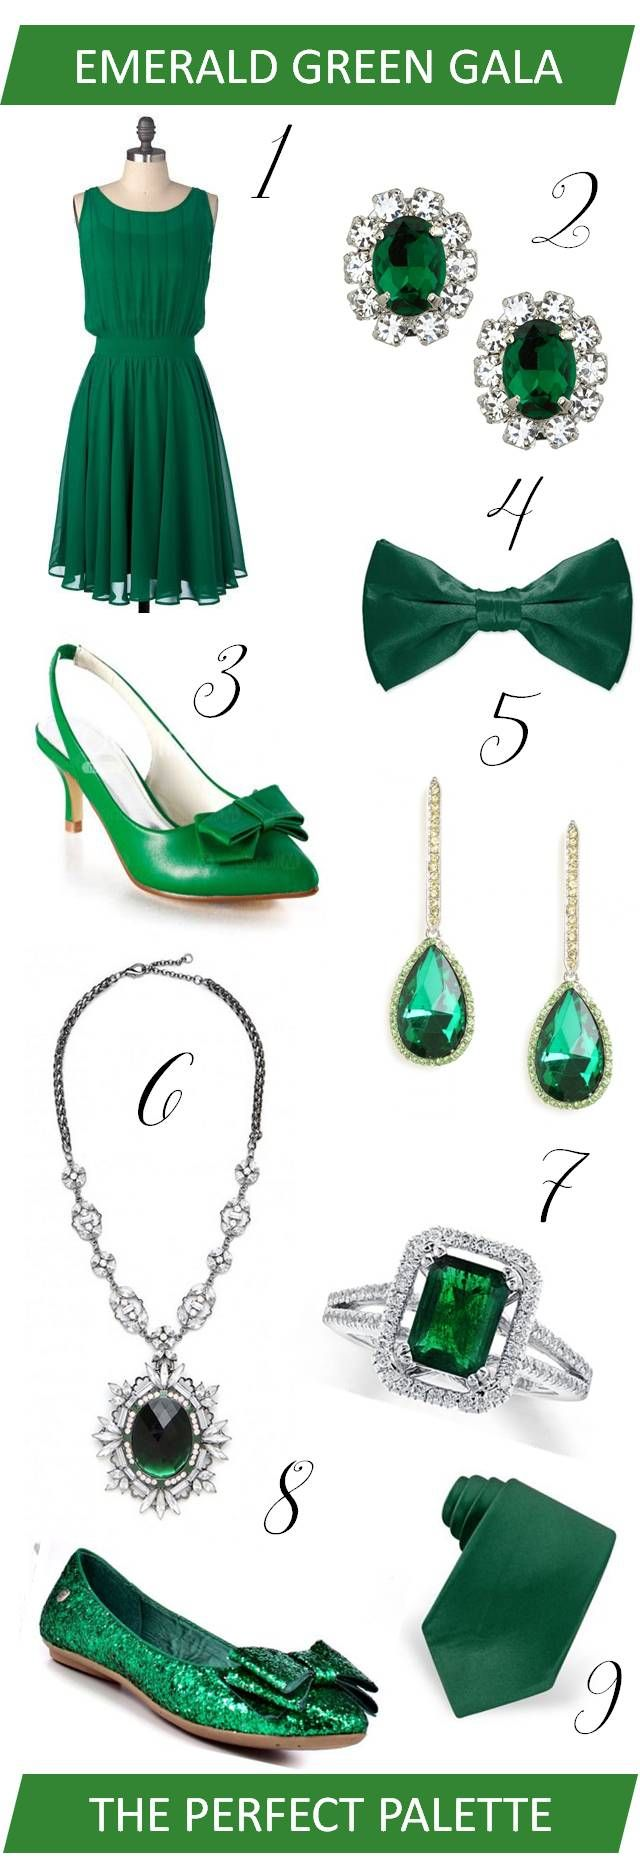 {wedding wardrobe}: emerald green gala http://www.theperfectpalette.com/2013/01/wedding-wardrobe-emerald-green-gala.html